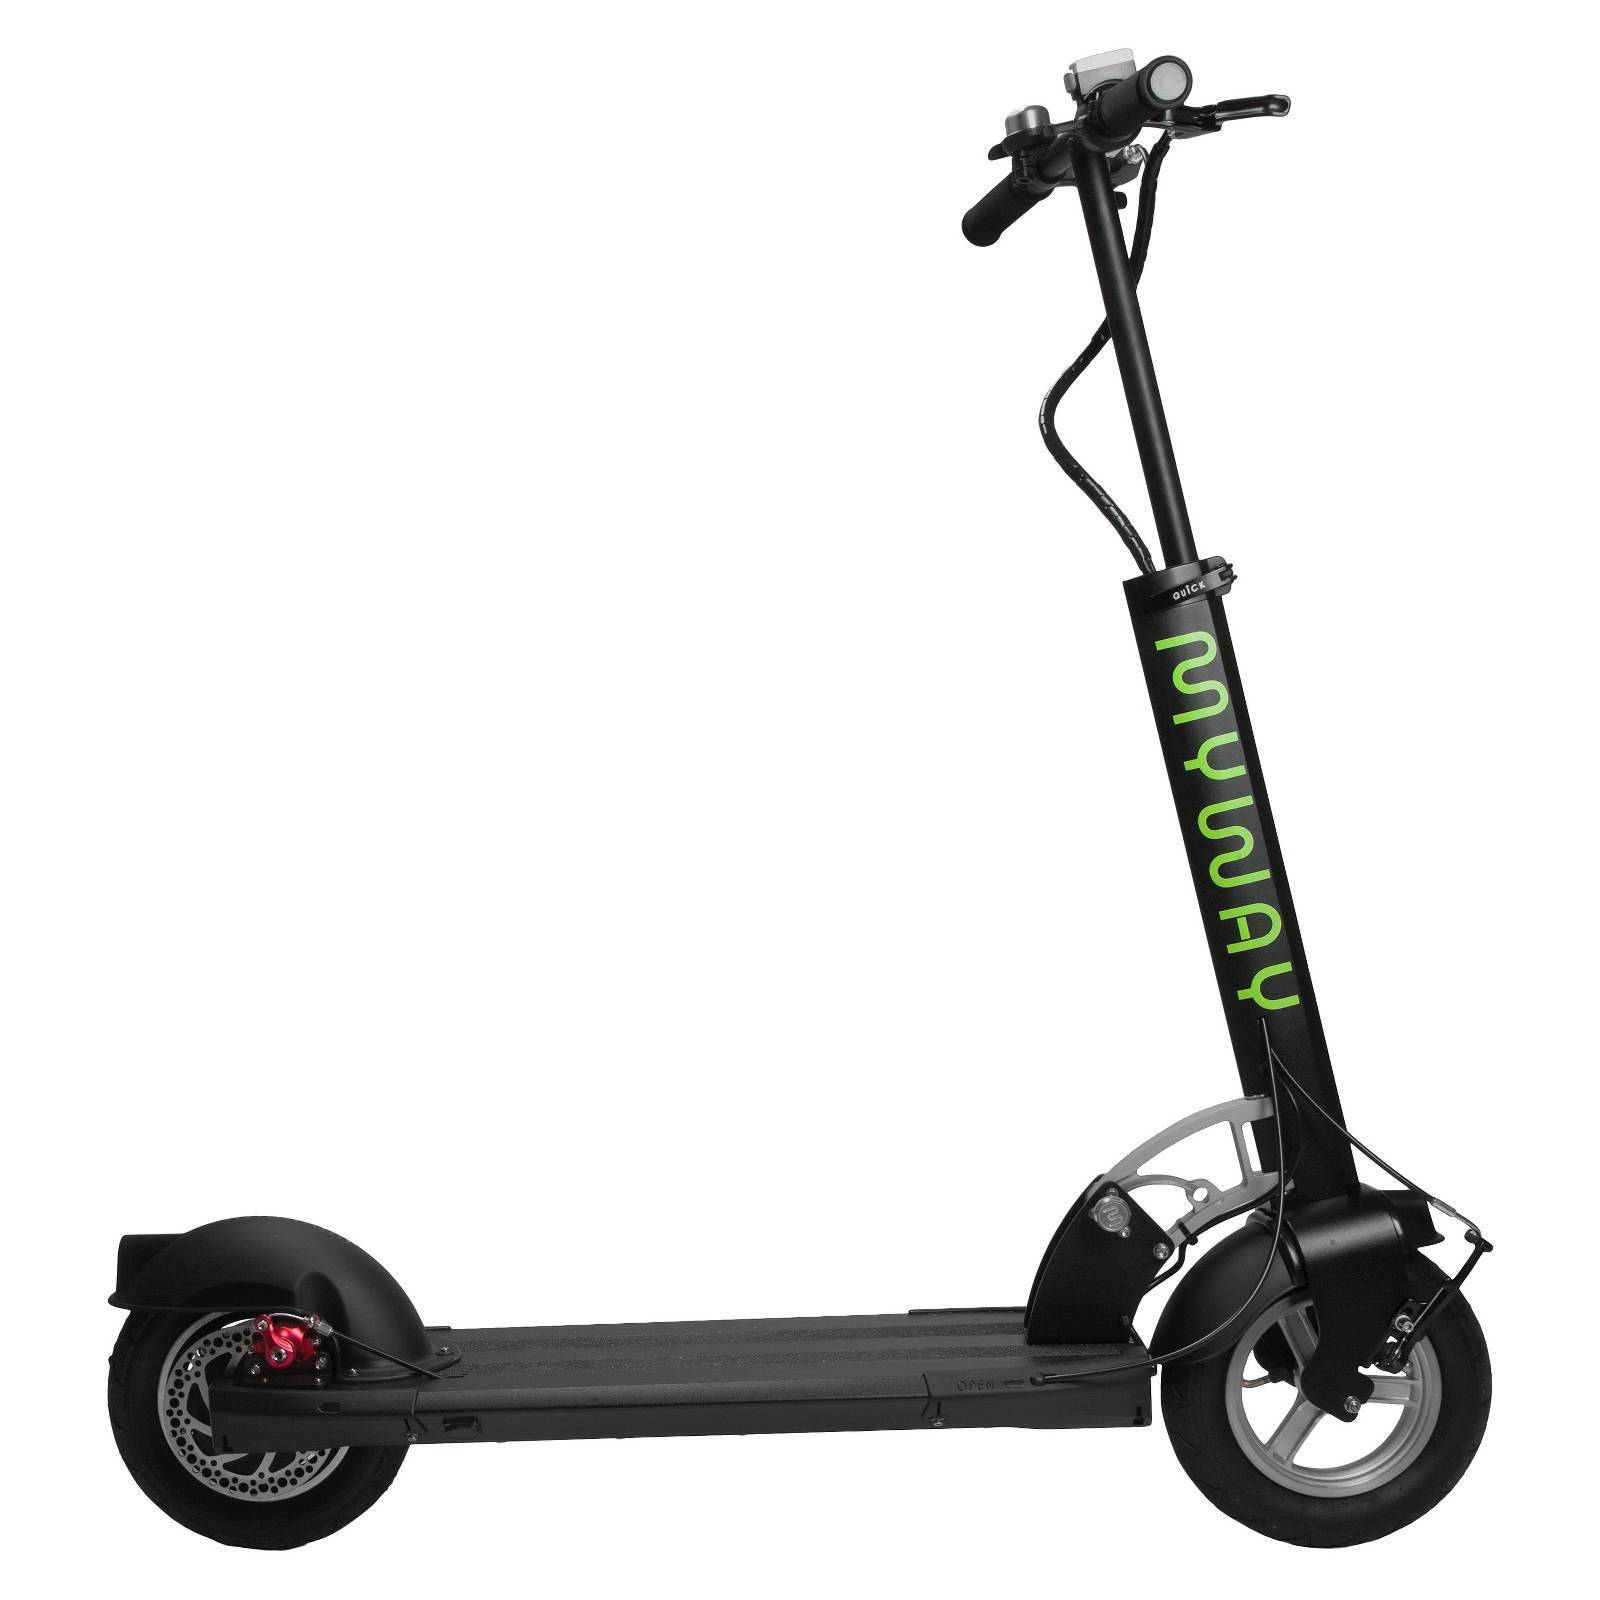 jetson breeze 250w folding electric scooter black 2 extra tires and Li-Ion Battery Pack jetson breeze 250w folding electric scooter black 2 extra tires and inner tube ebay